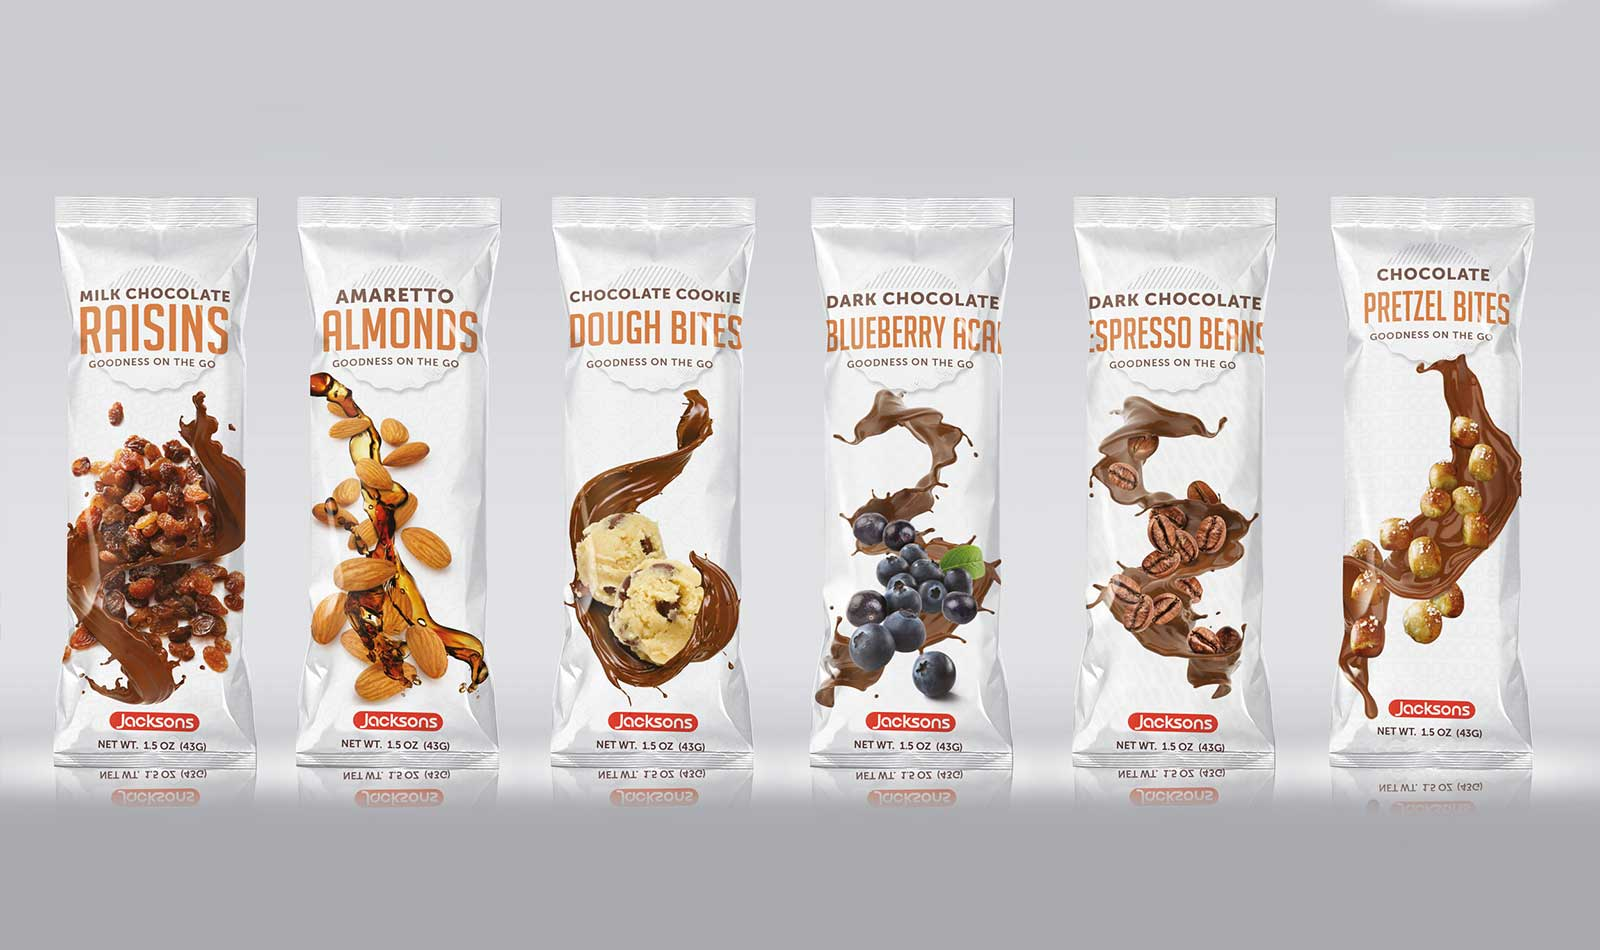 Food Packaging Design - C Store Packaging Design - Jacksons Packaging Design